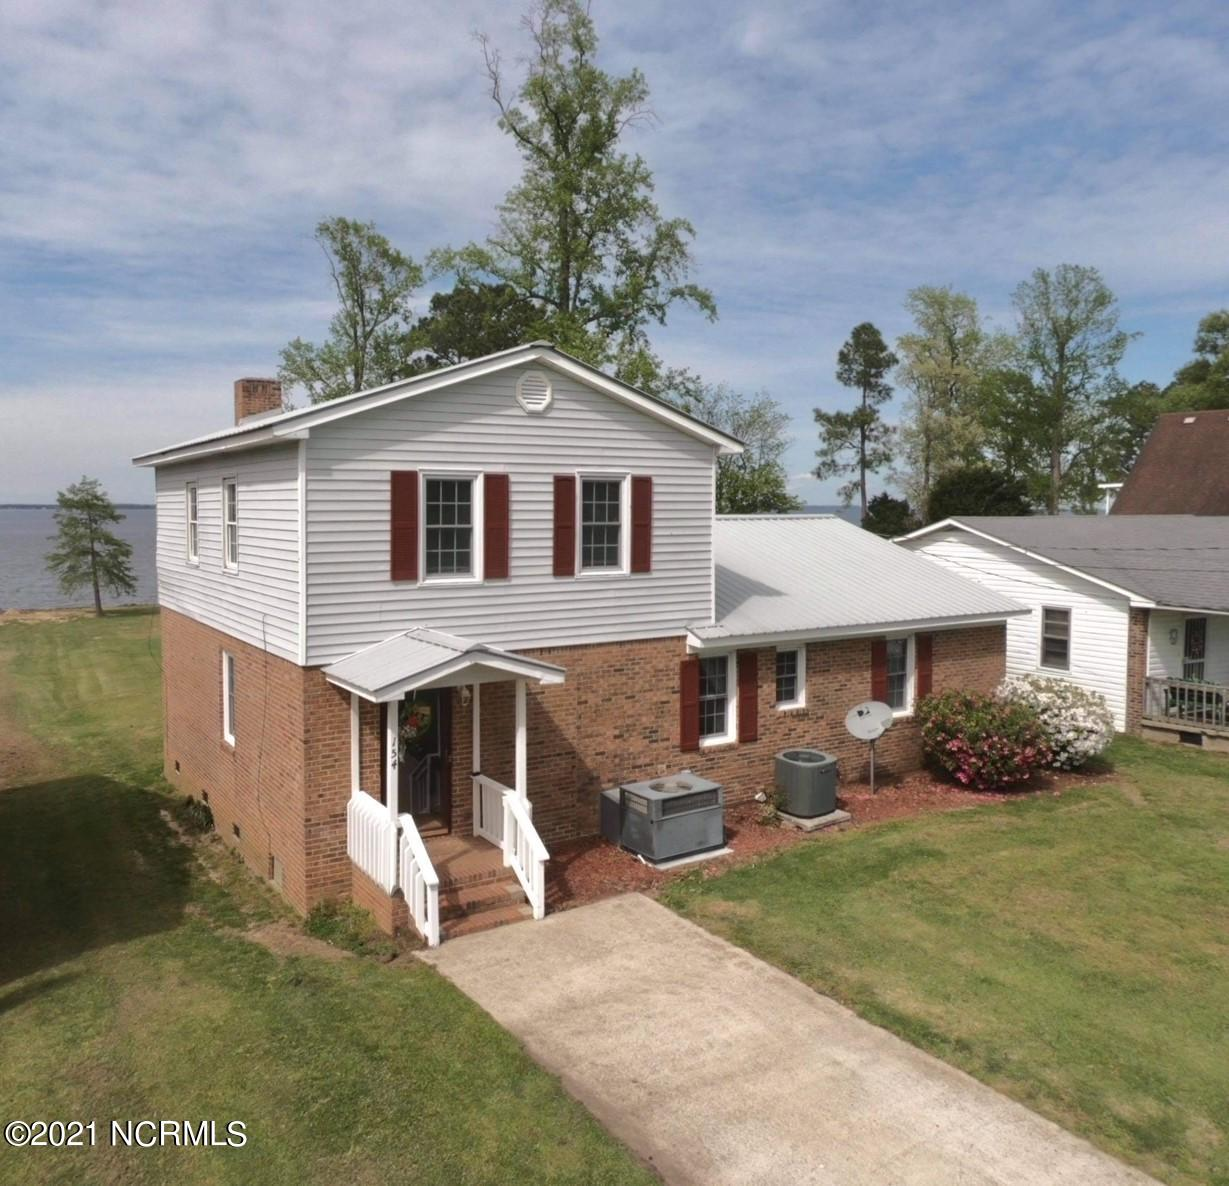 154 Cypress Shores Road, Roper, North Carolina 27970, 3 Bedrooms Bedrooms, 7 Rooms Rooms,2 BathroomsBathrooms,Single family residence,For sale,Cypress Shores,100270182